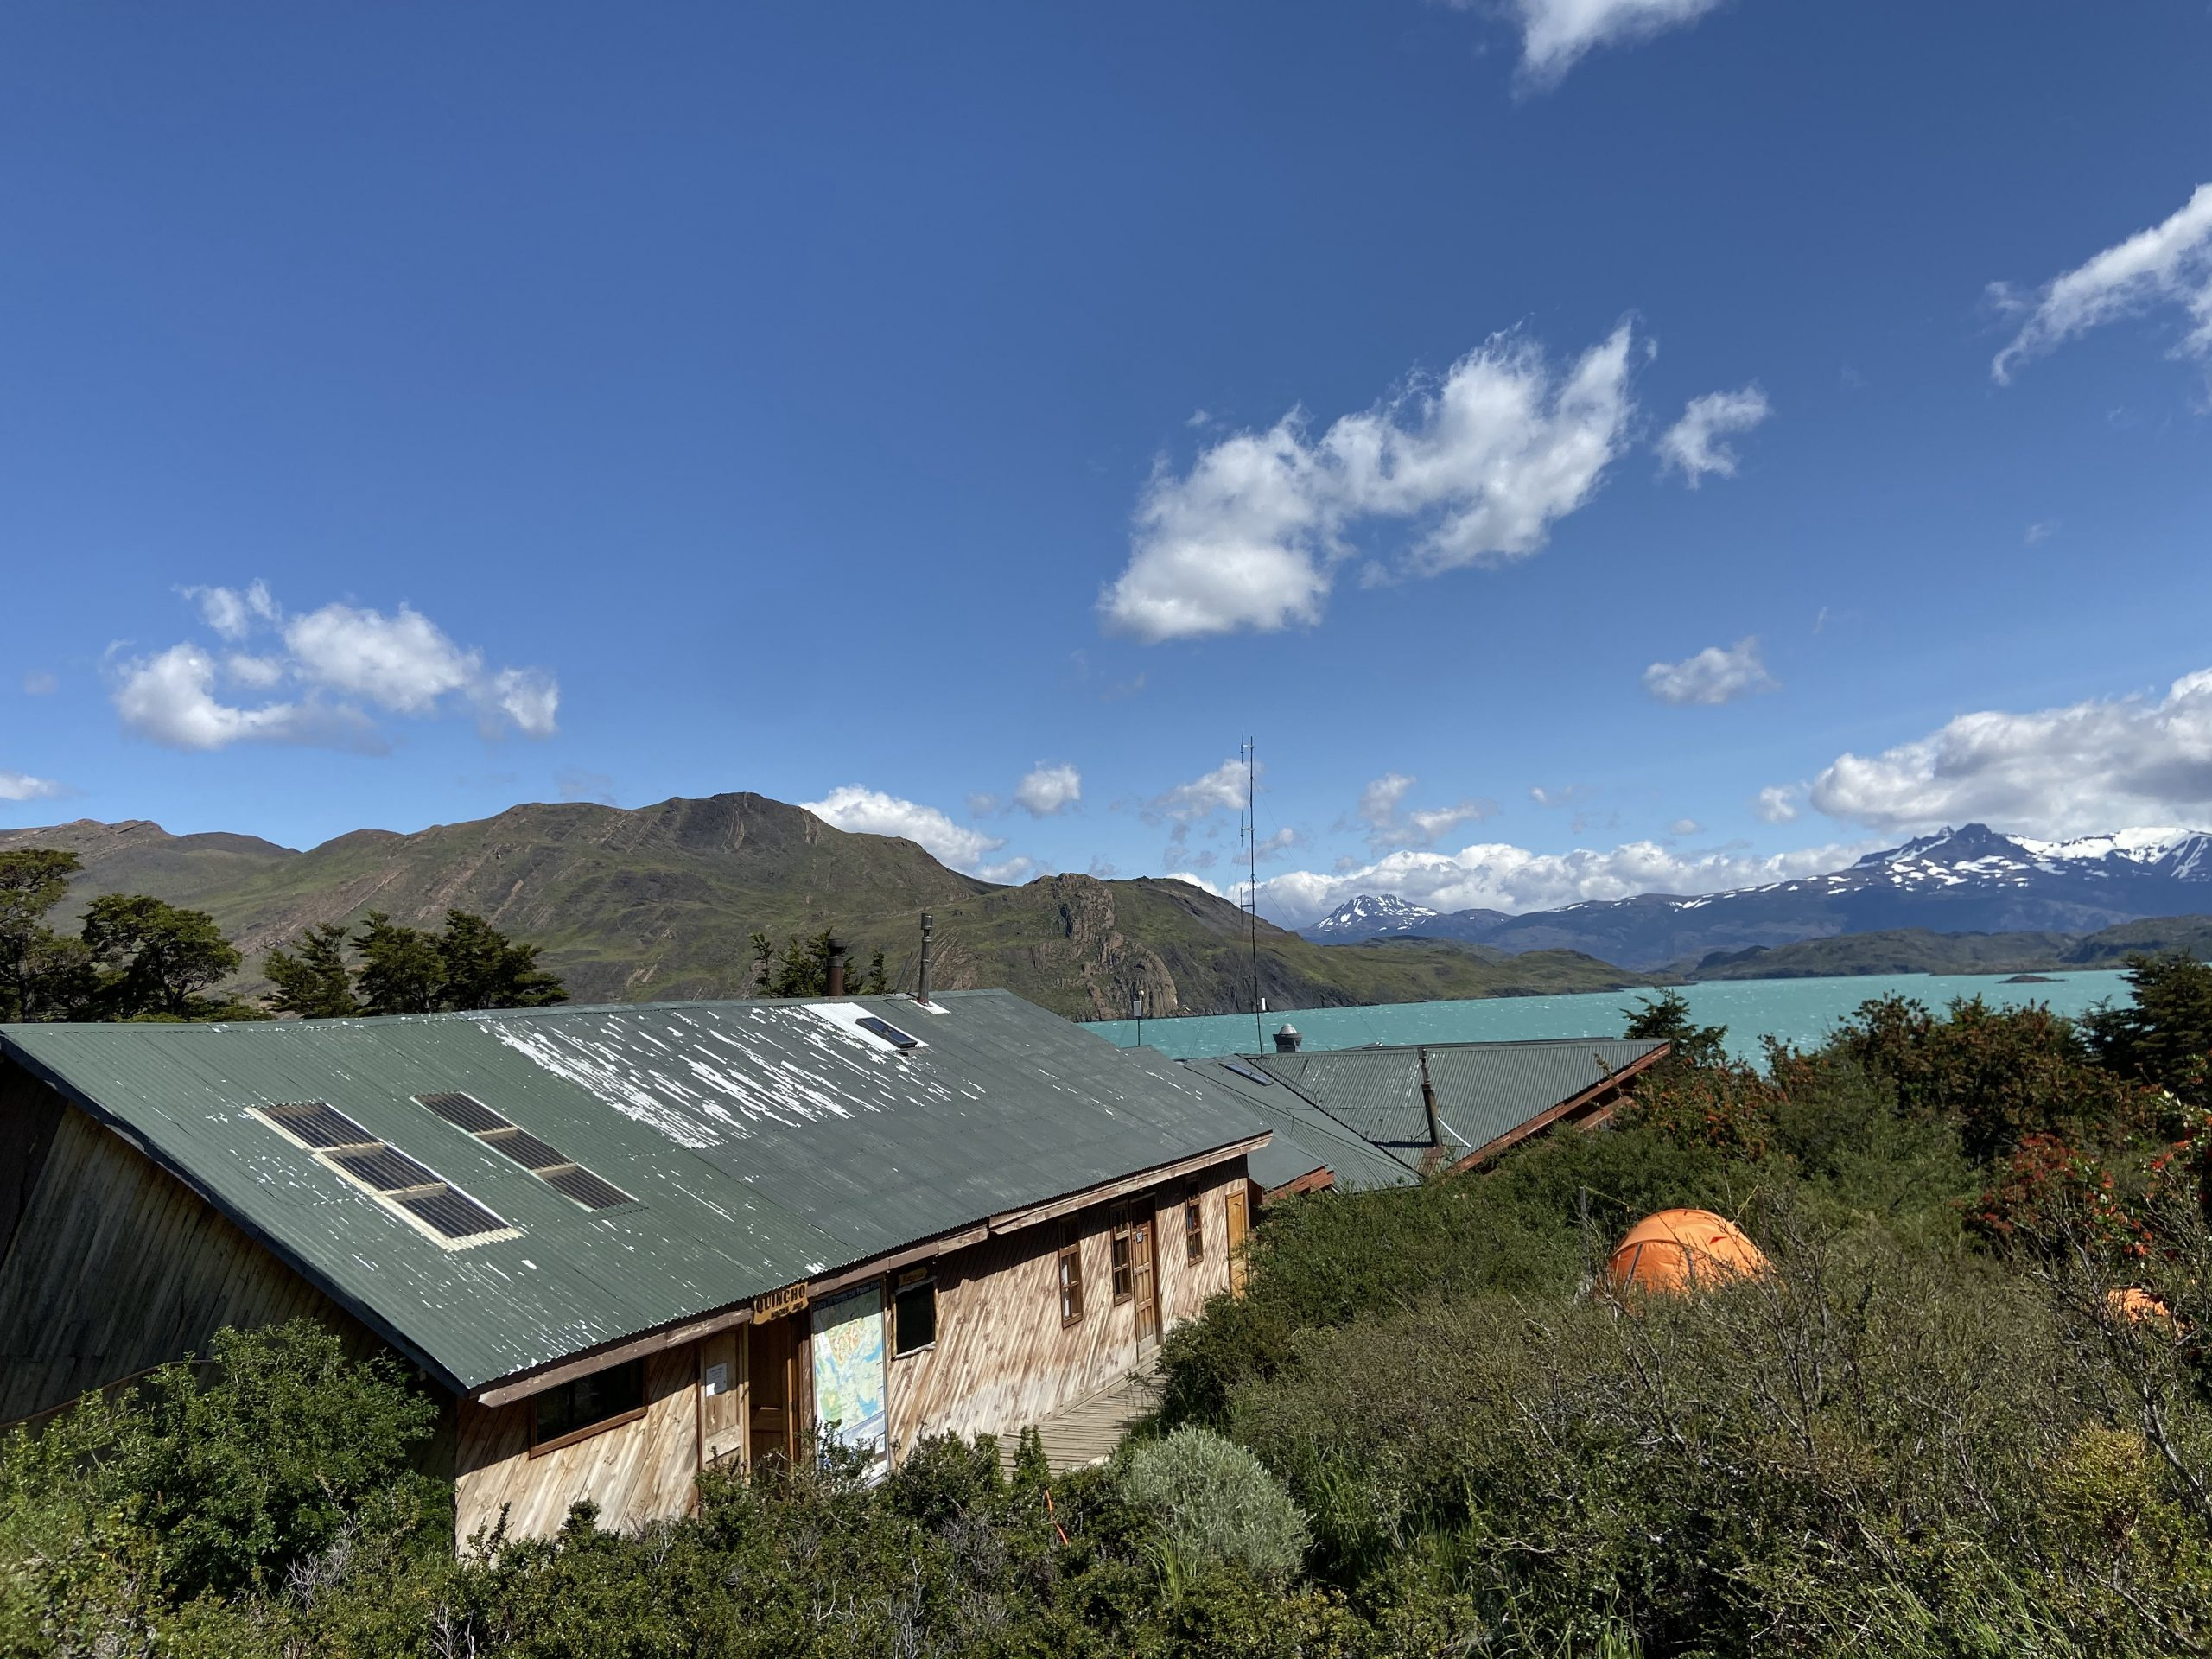 A rustic hiking hostel and views of Refugio Cuernos with views of Lago Nordenskjold